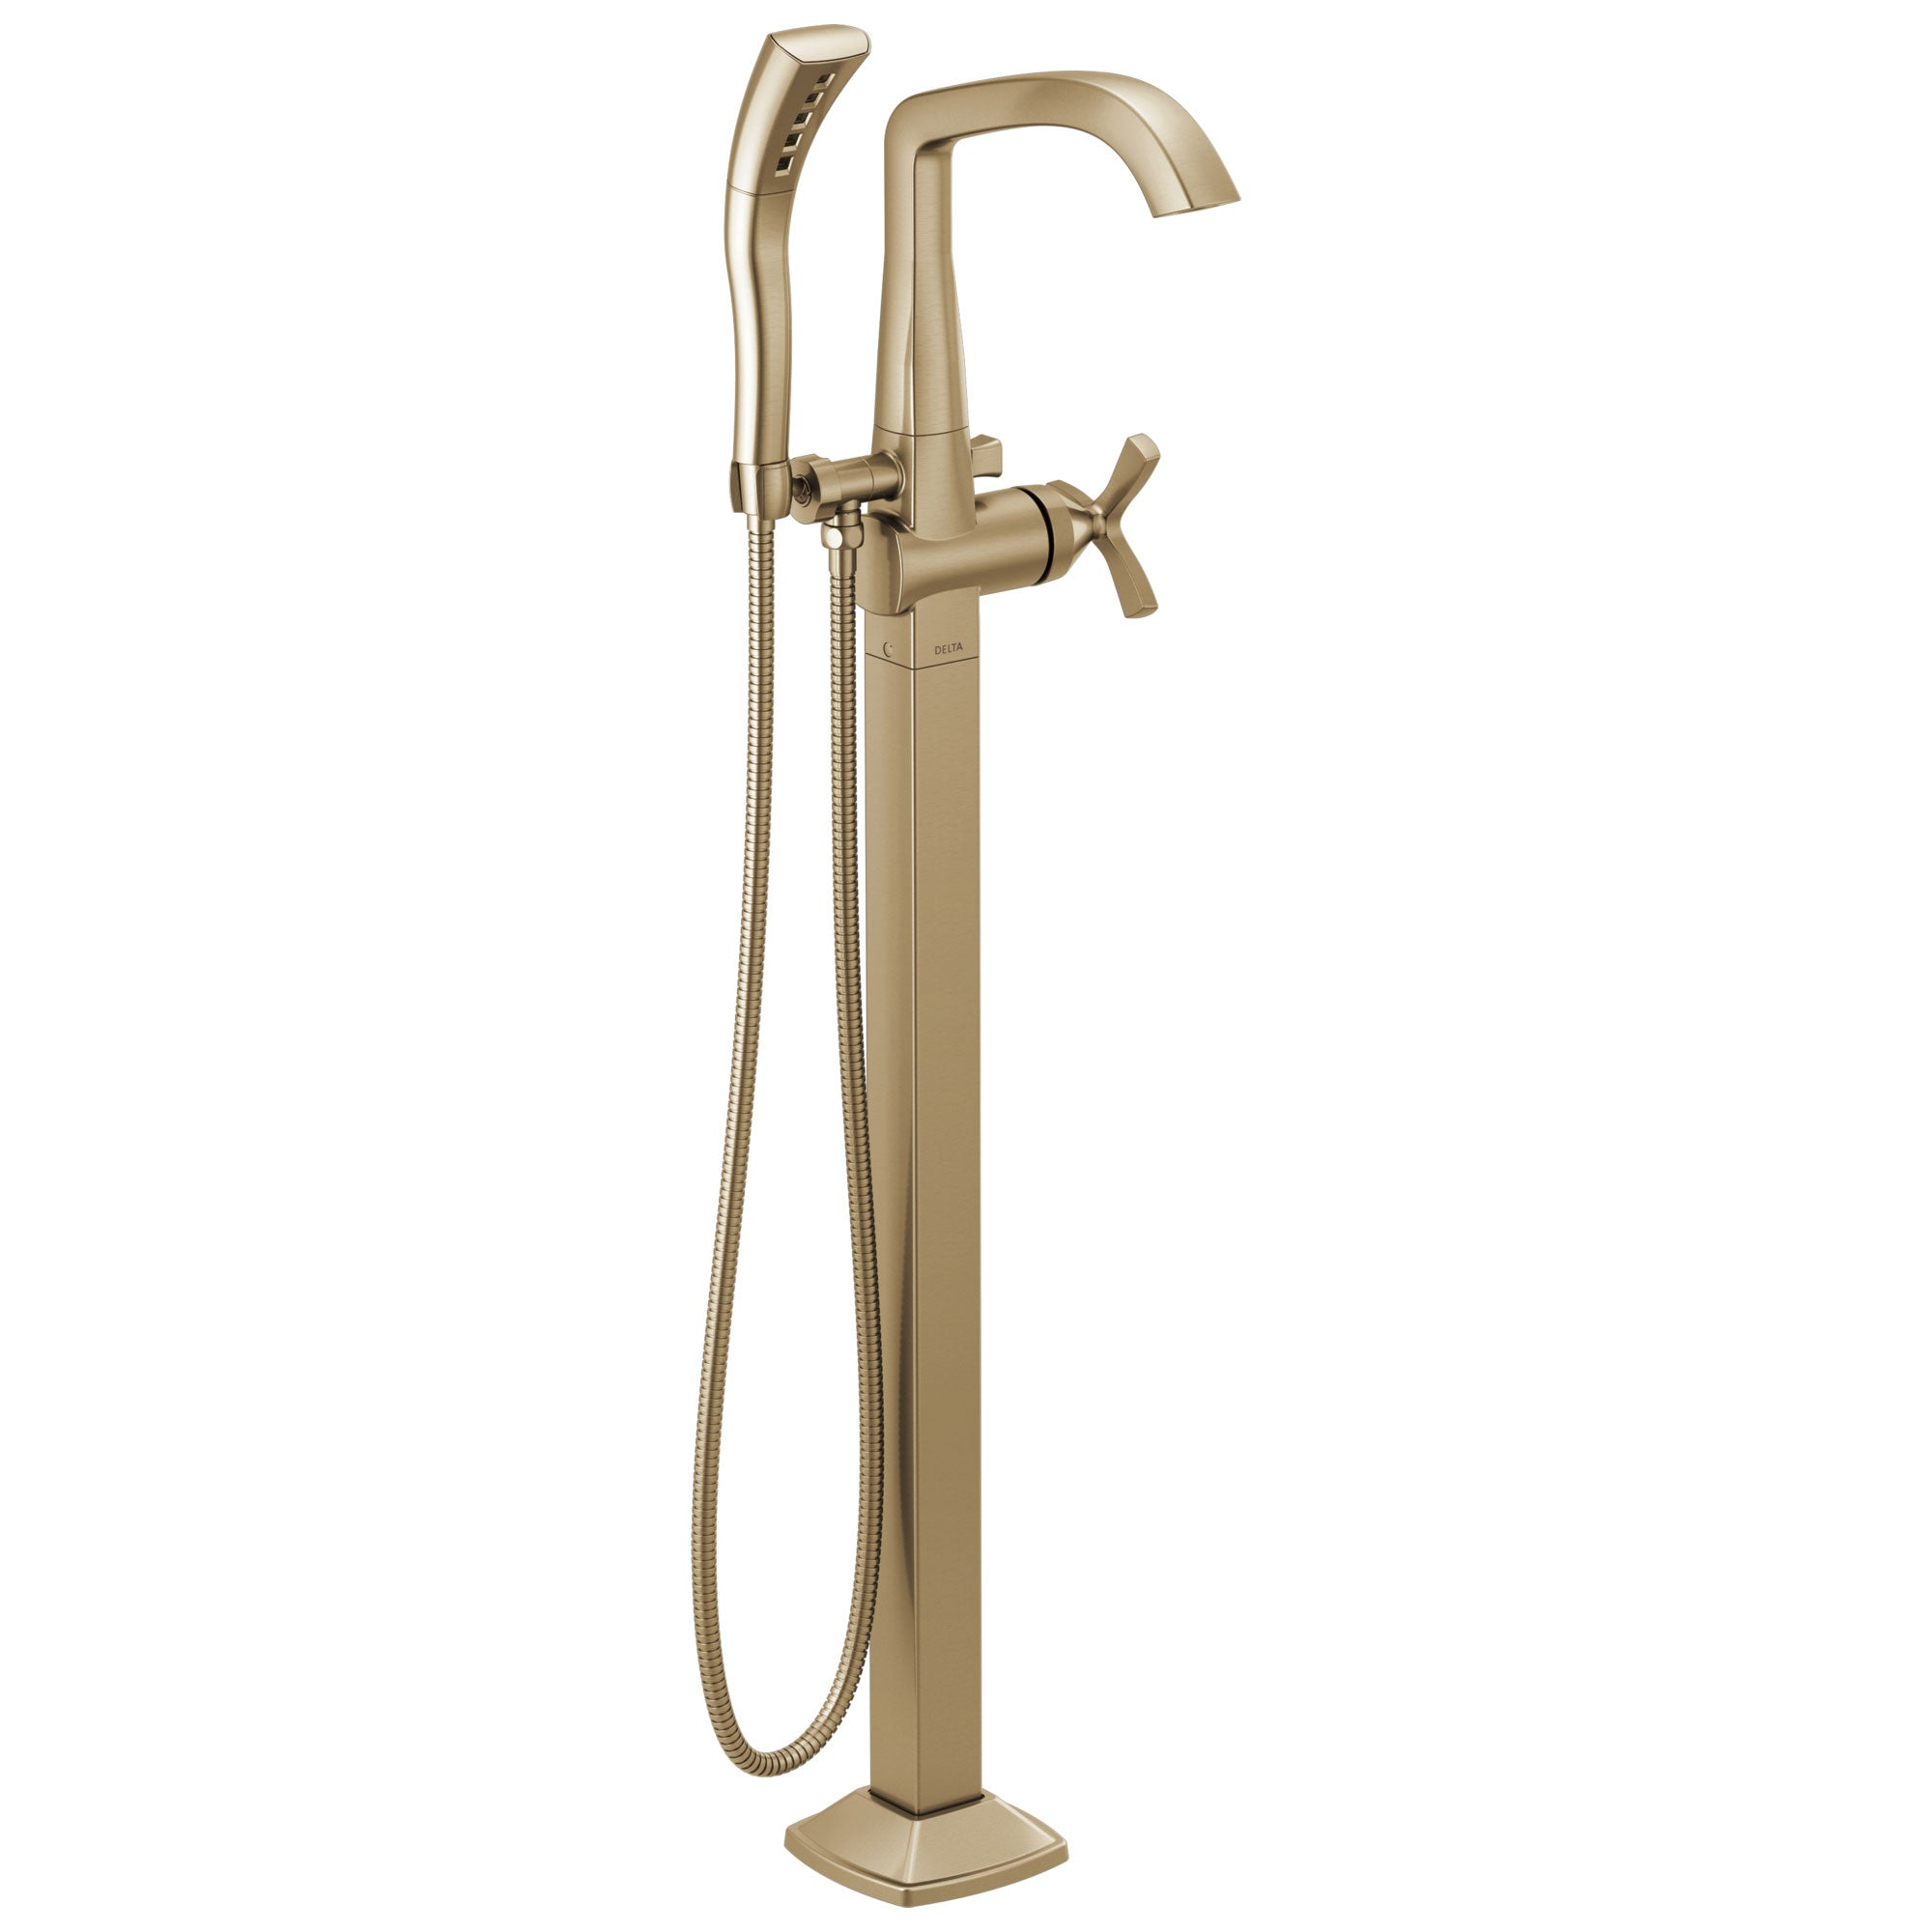 Delta Stryke Champagne Bronze Finish Single Cross Handle Floor Mount Tub Filler Faucet with Hand Sprayer Trim Kit (Requires Valve) DT47766CZFL